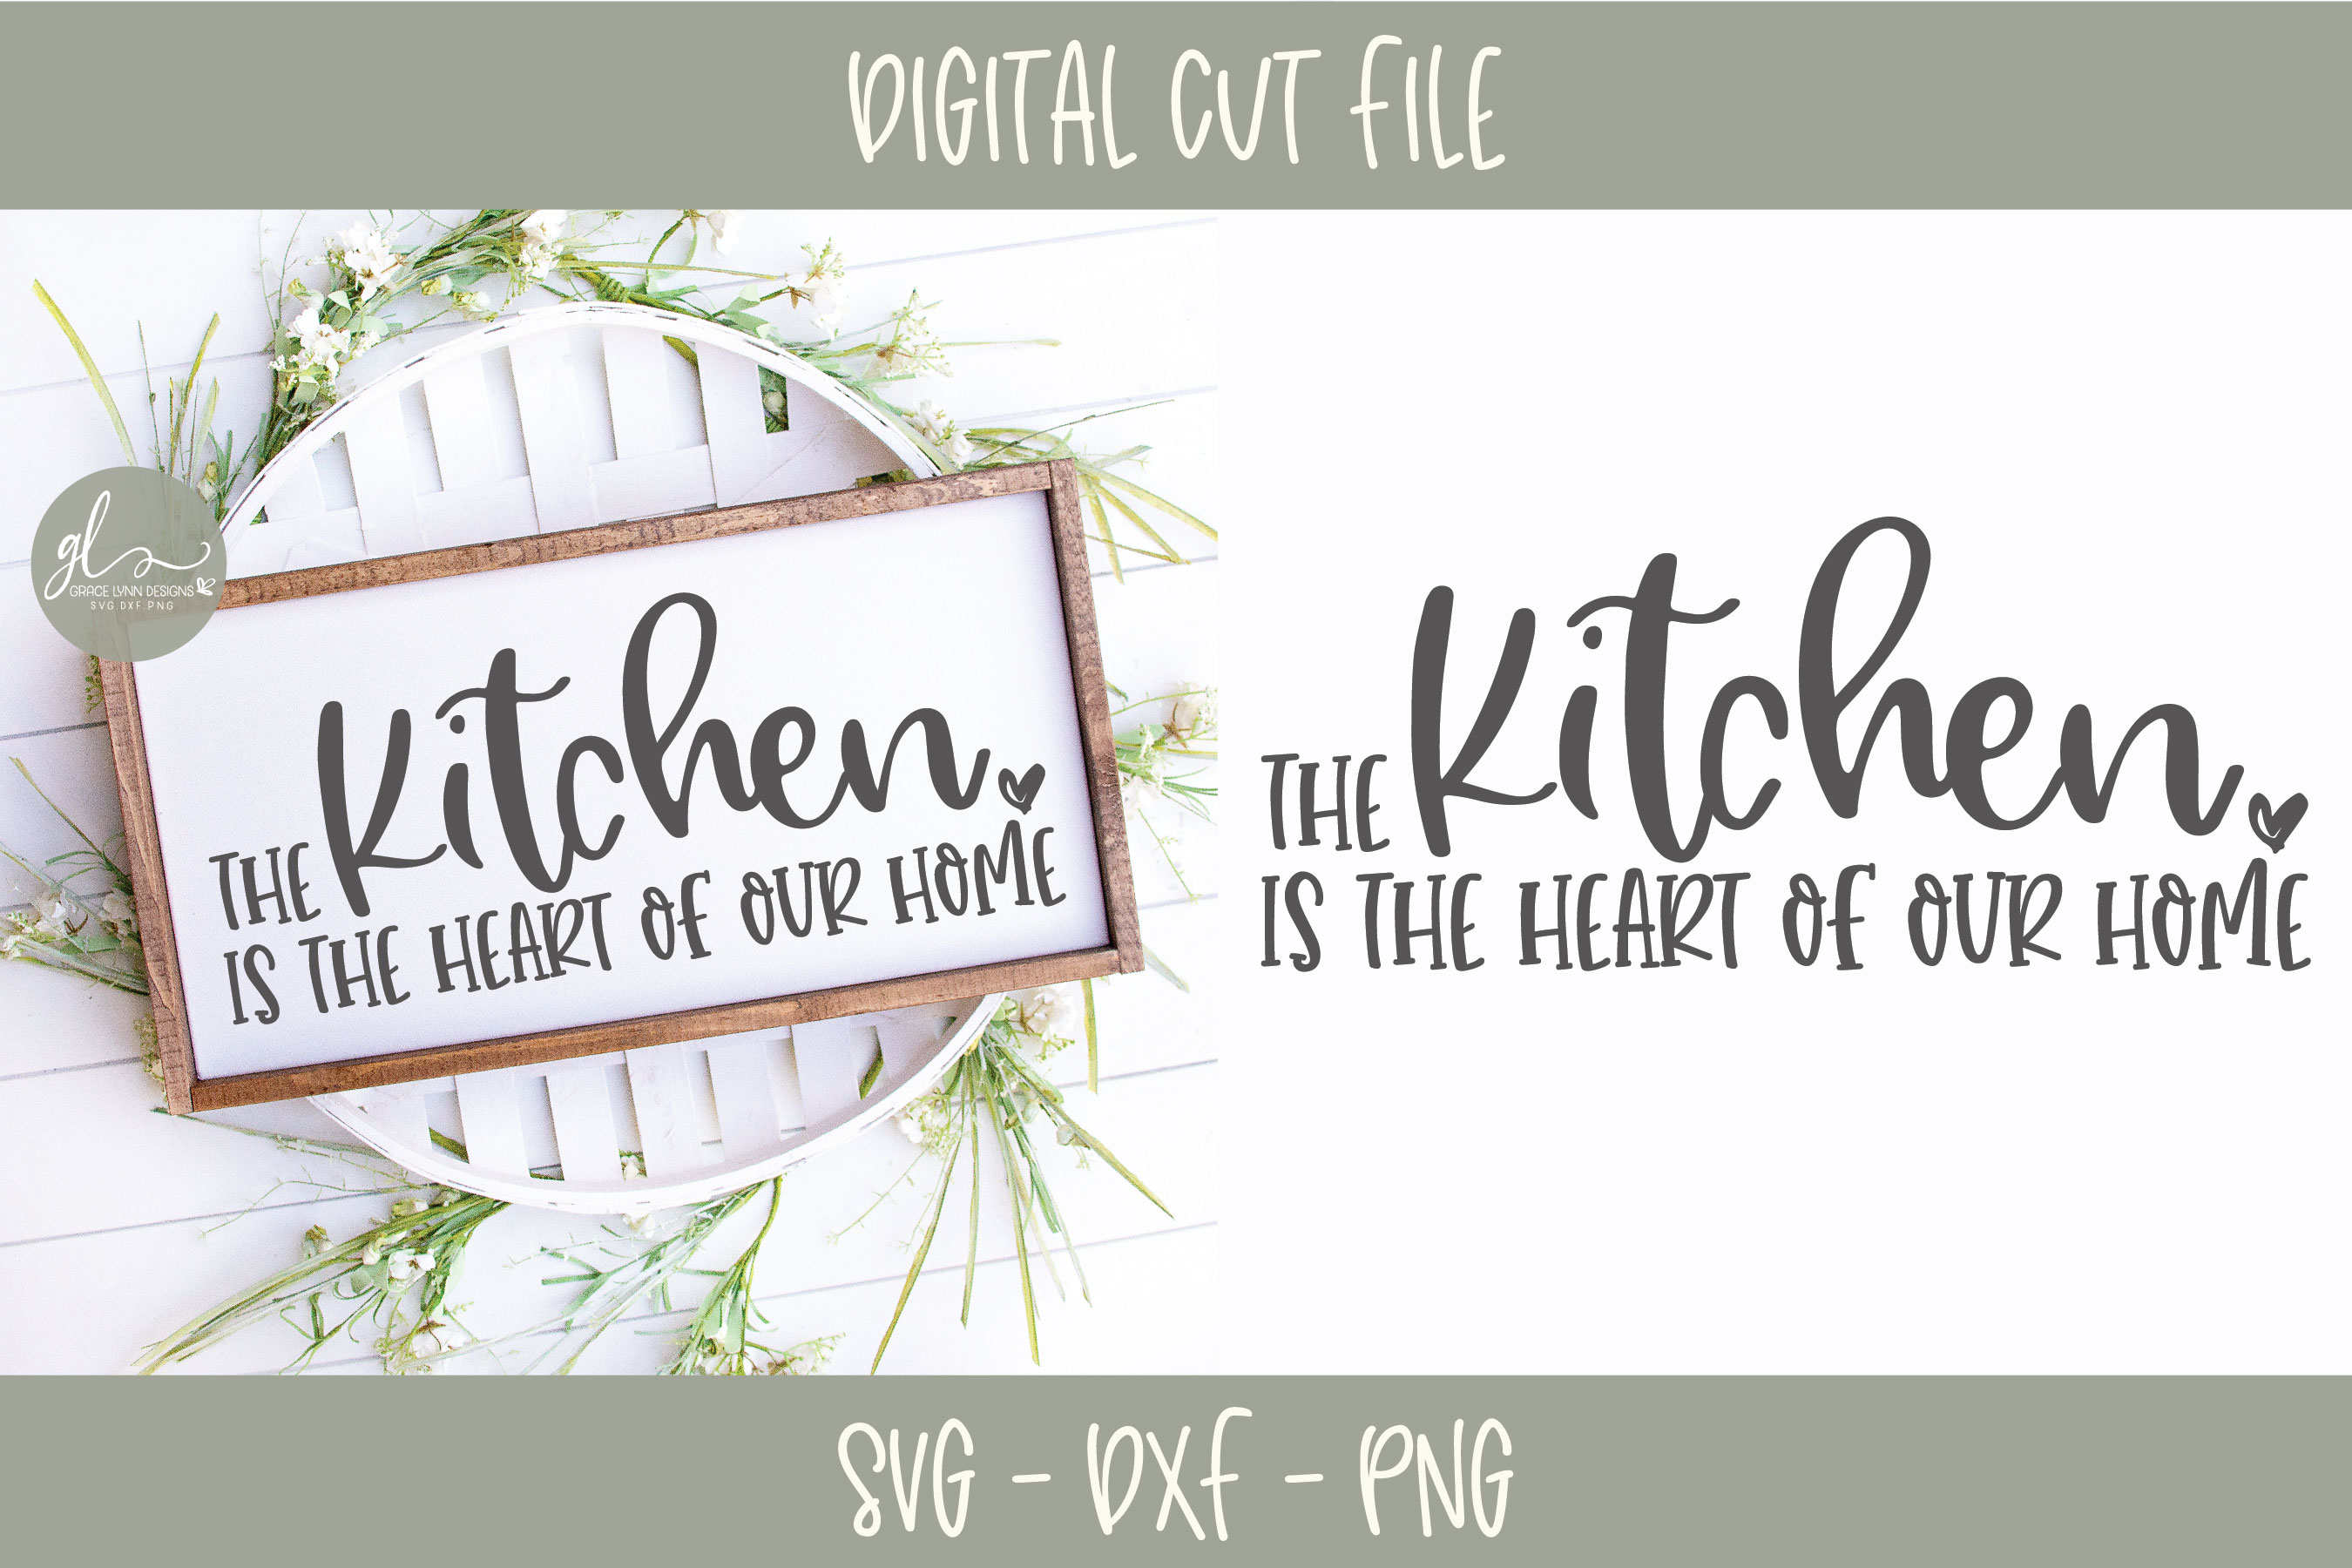 The Kitchen Is The Heart Of Our Home - SVG Cut File example image 1